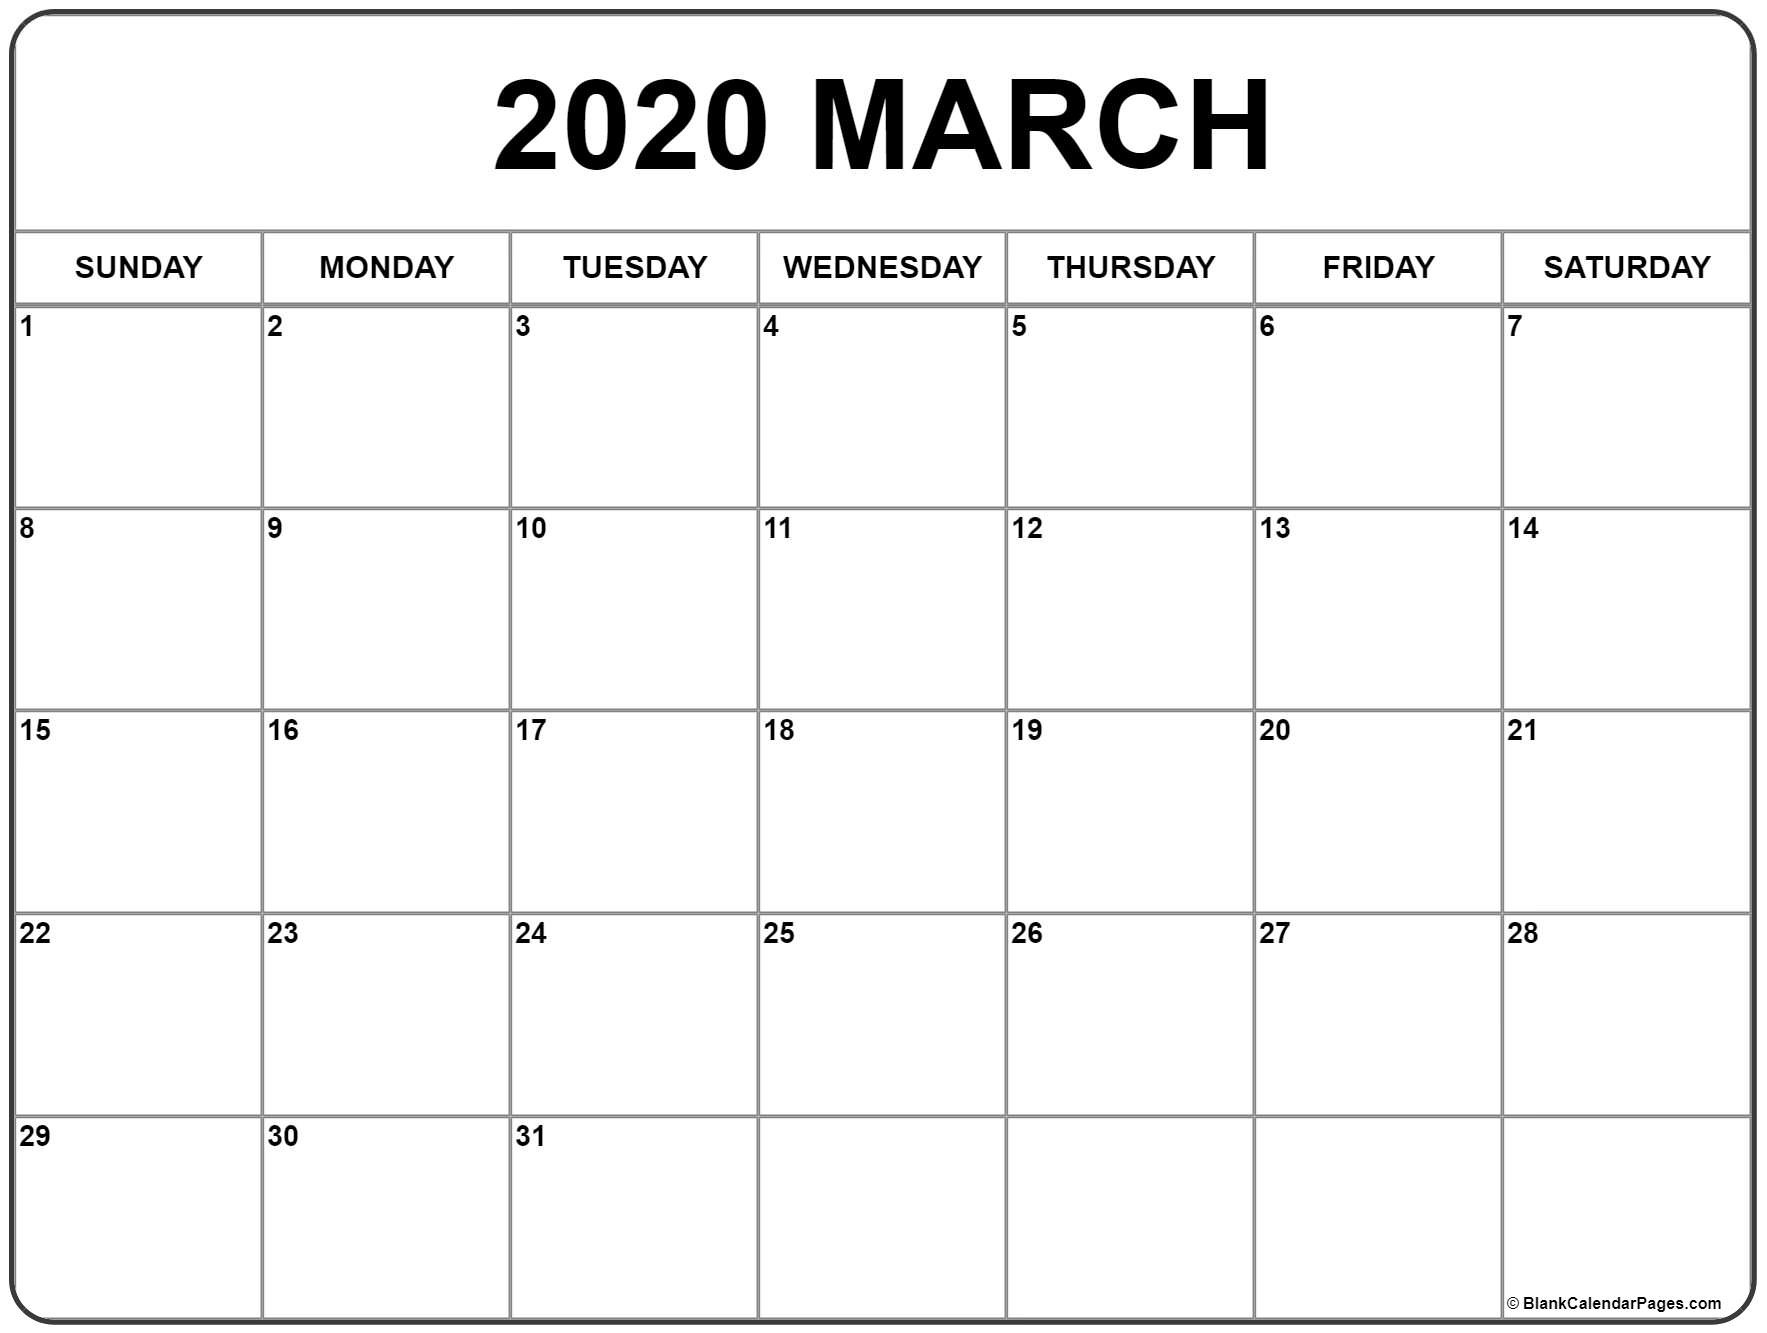 March 2020 Calendar | Free Printable Monthly Calendars  Print Free Calendars Without Downloading